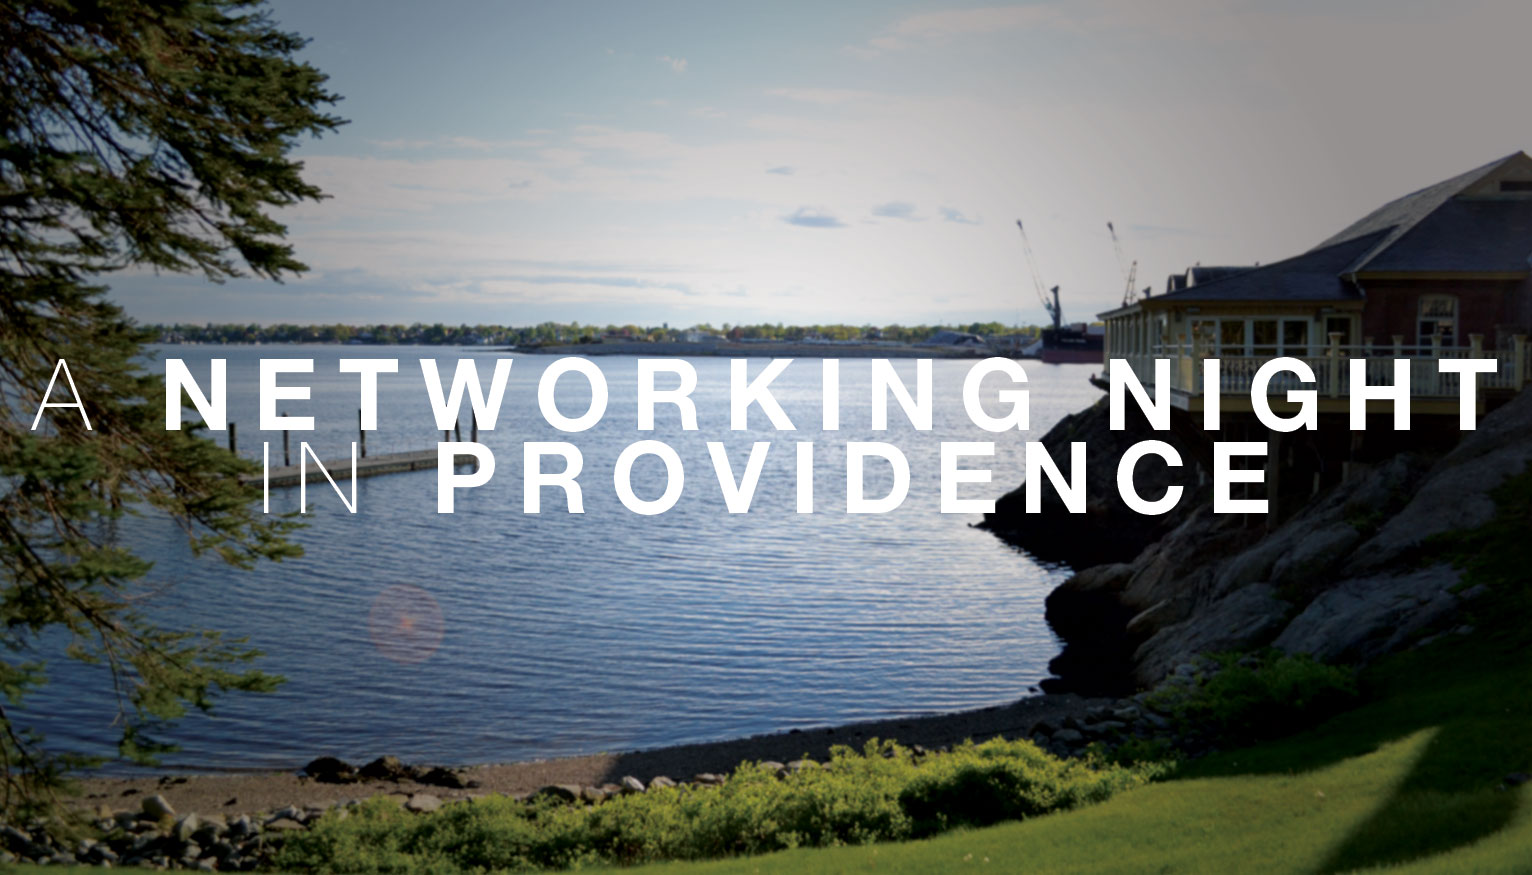 ACG Boston: A Networking Night in Providence